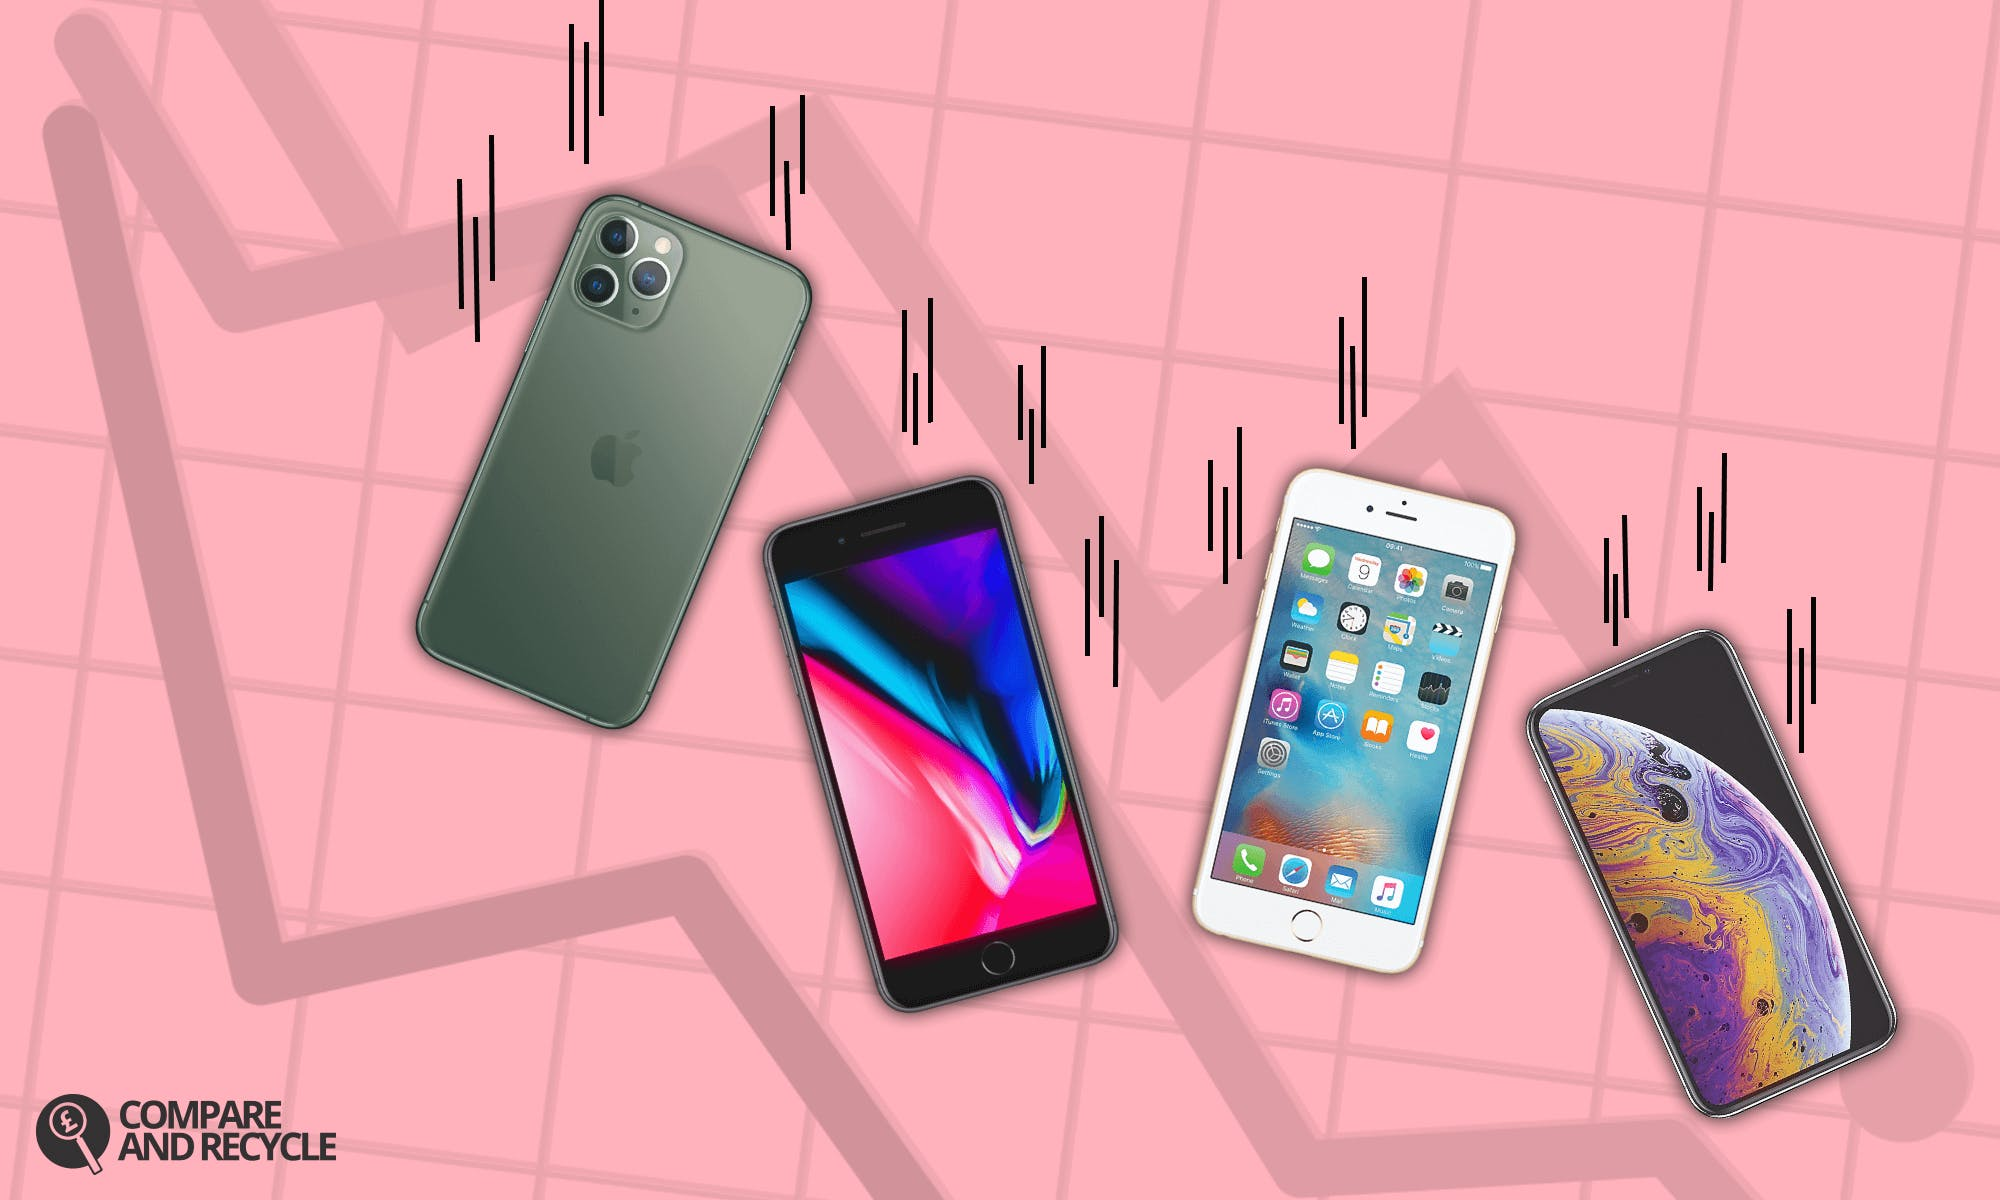 September 2020 iPhone Price Predictions